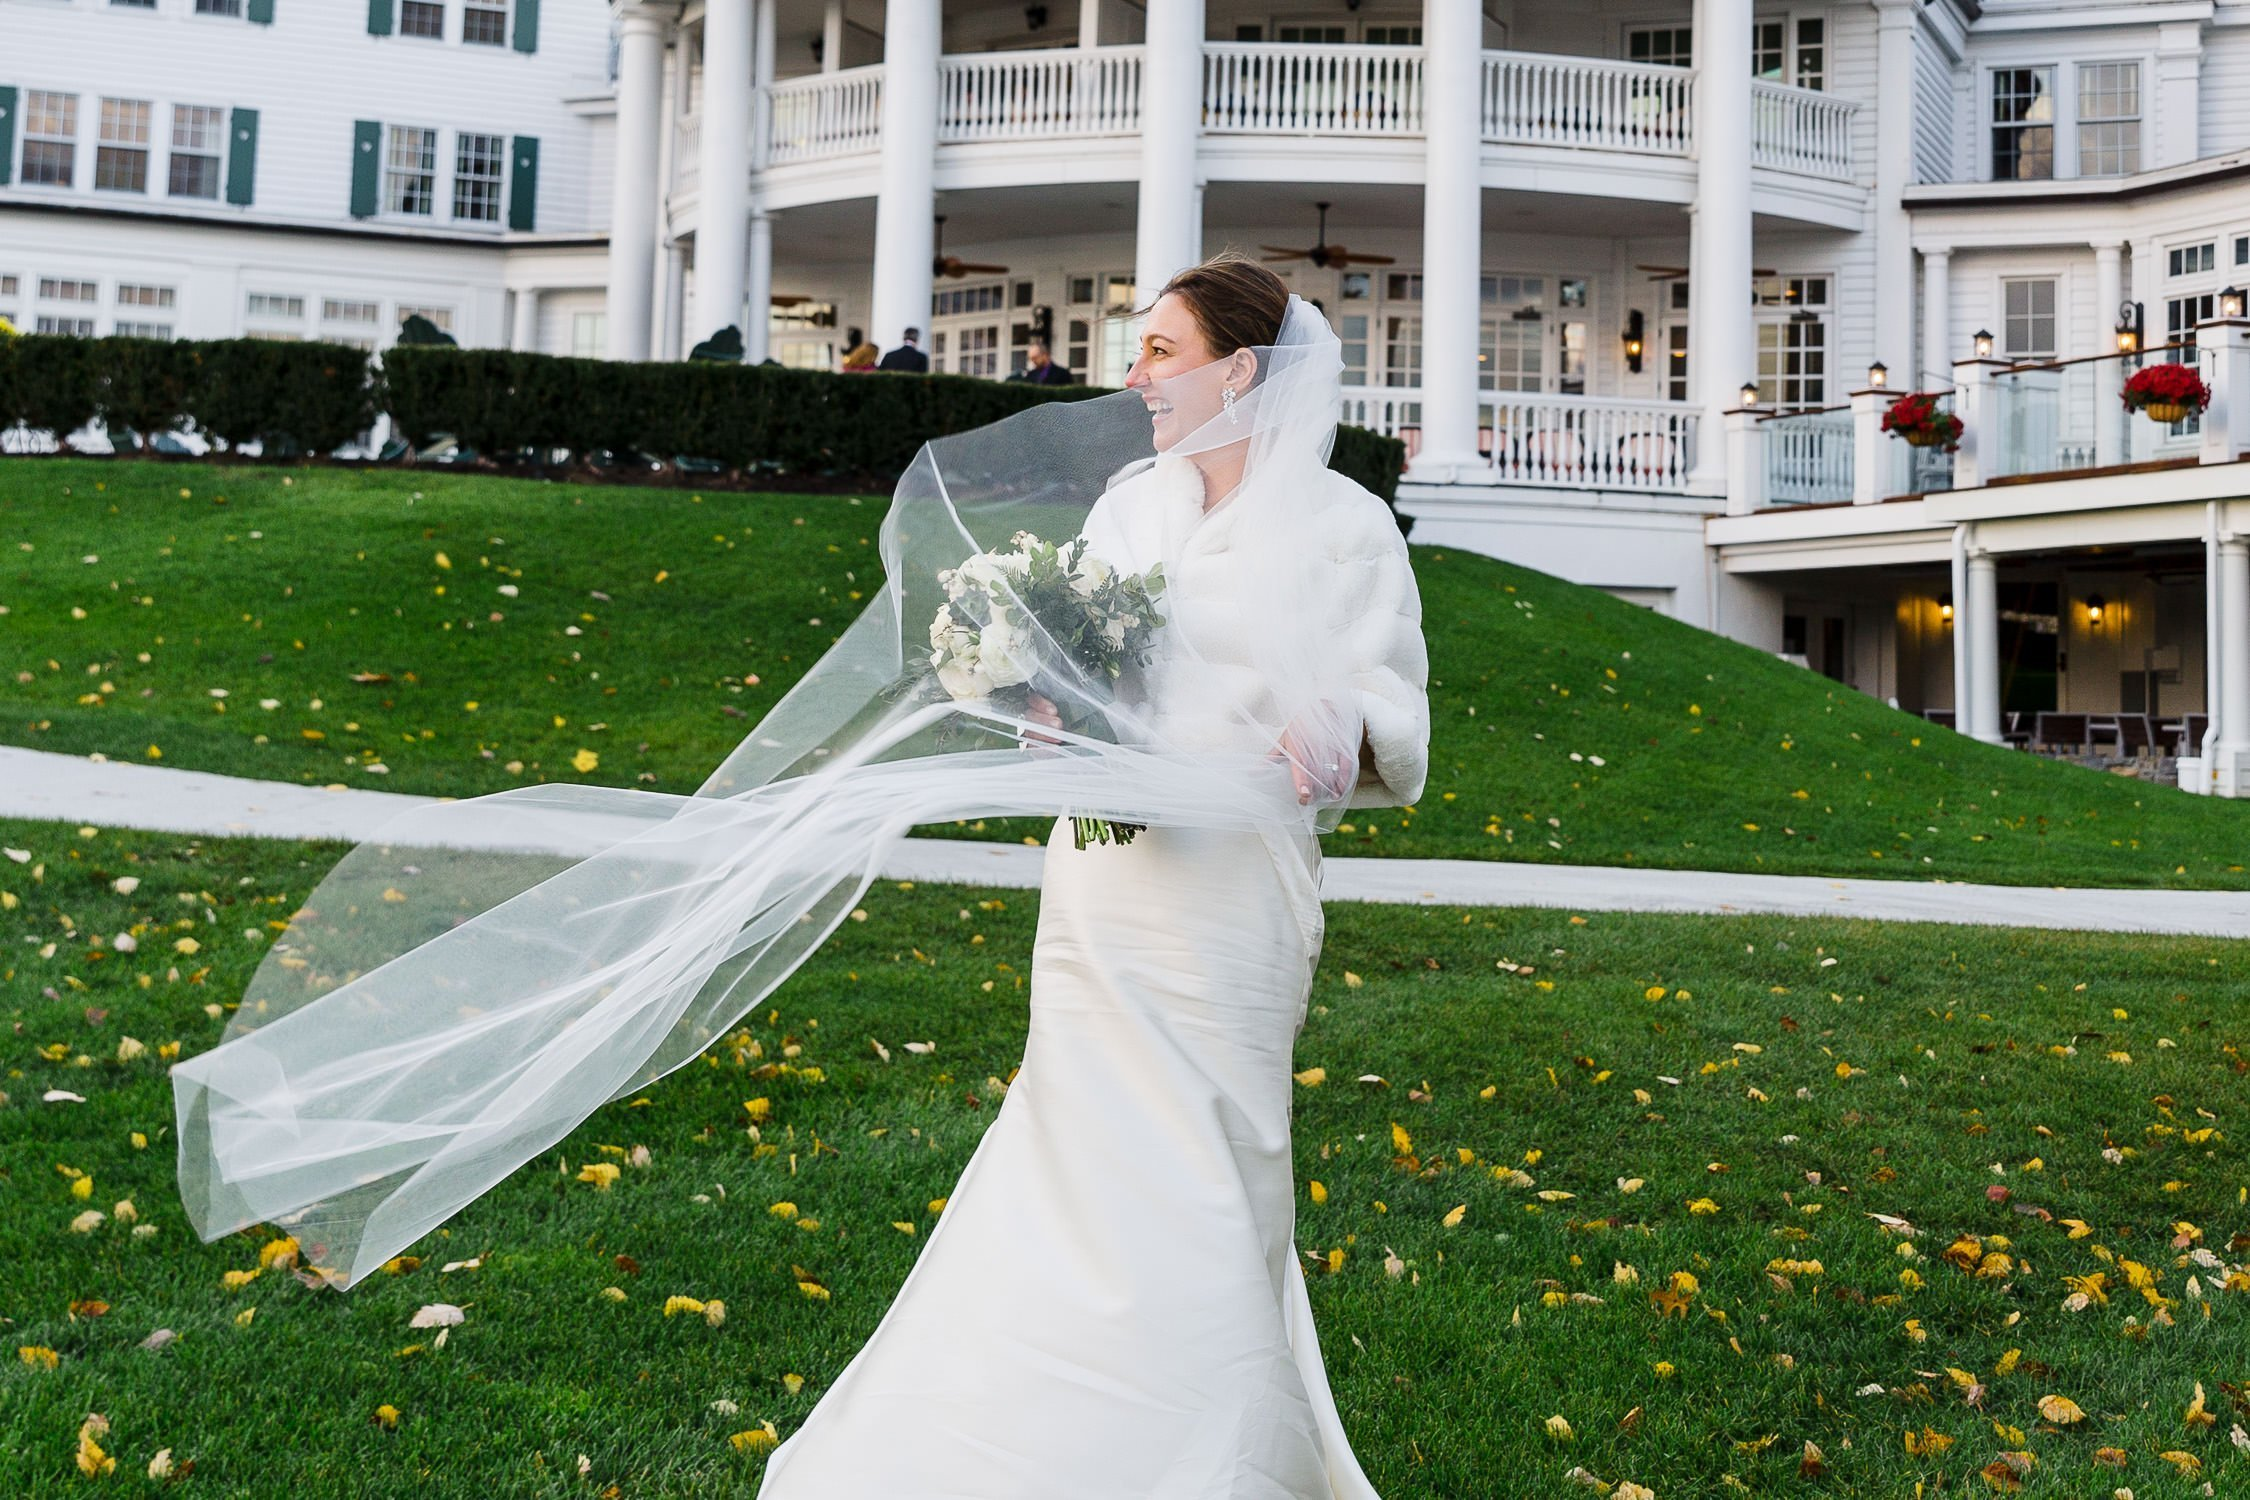 Brides laughs as veil blows in wind in front of The Sagamore Resort wedding